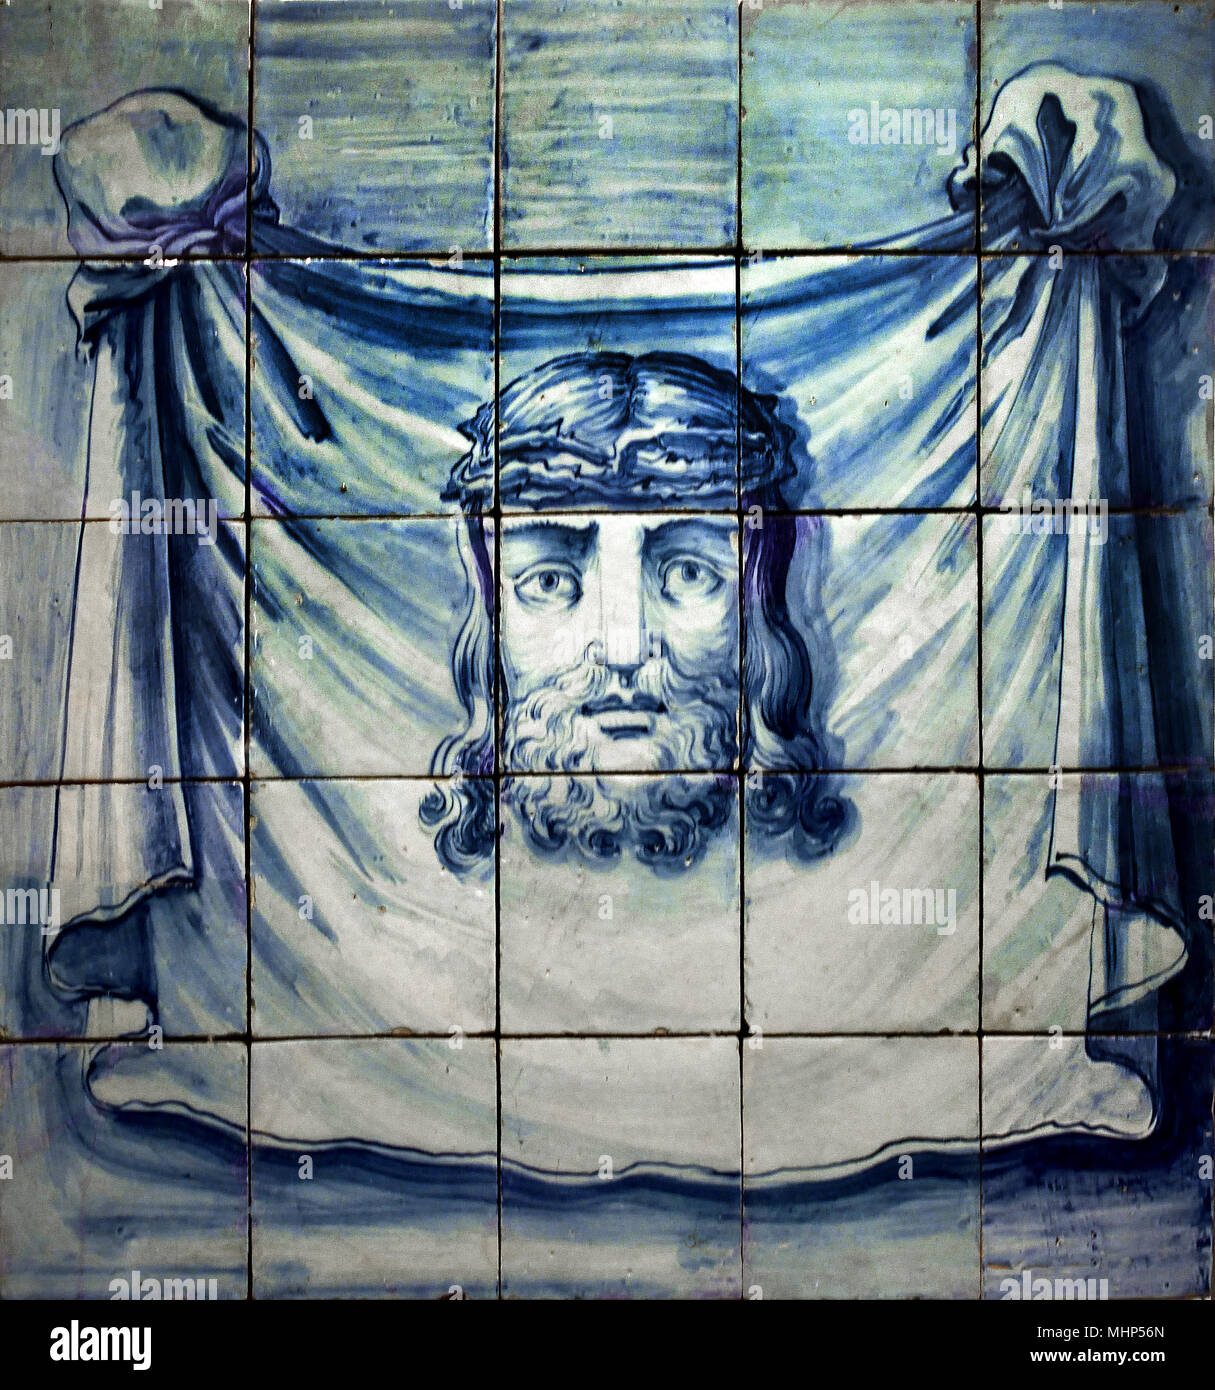 The Sudarium of Saint Veronica and the 'true image' of Jesus Christ wearing a crown of thrones 18th Century. Portuguese Azulejo - Blue wall  Tiles, Portugal - Stock Image